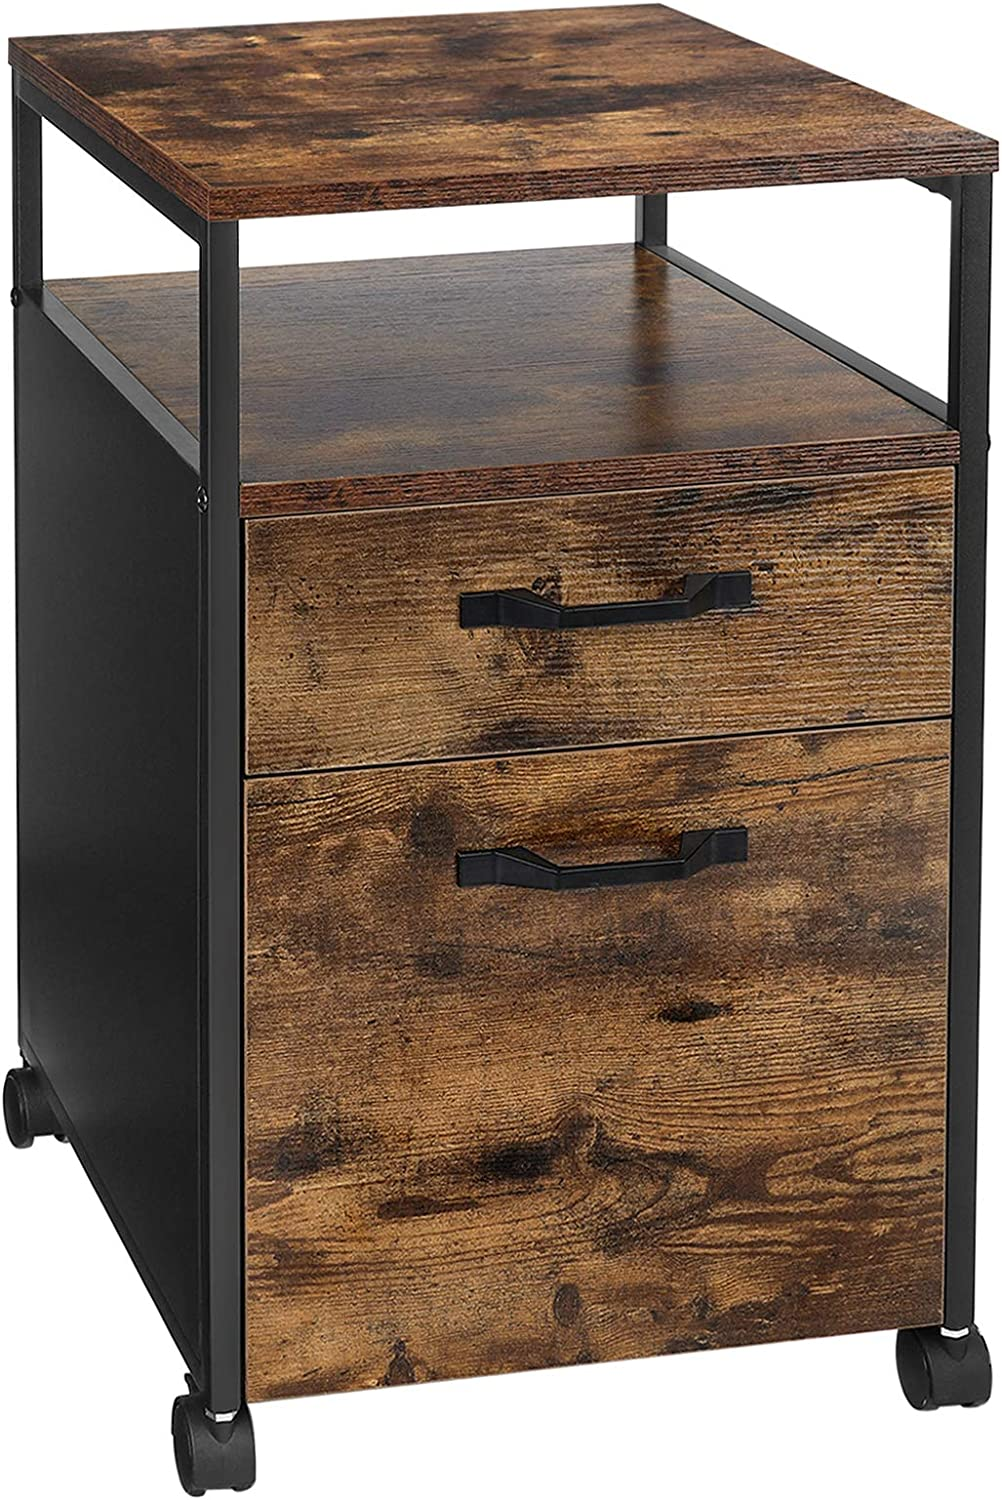 VASAGLE Rolling File Cabinet, Mobile Office Cabinet on Wheels, with 2 Drawers, Open Shelf, for A4, Letter Size, Hanging File Folders, Industrial Style, Rustic Brown and Black UOFC71X